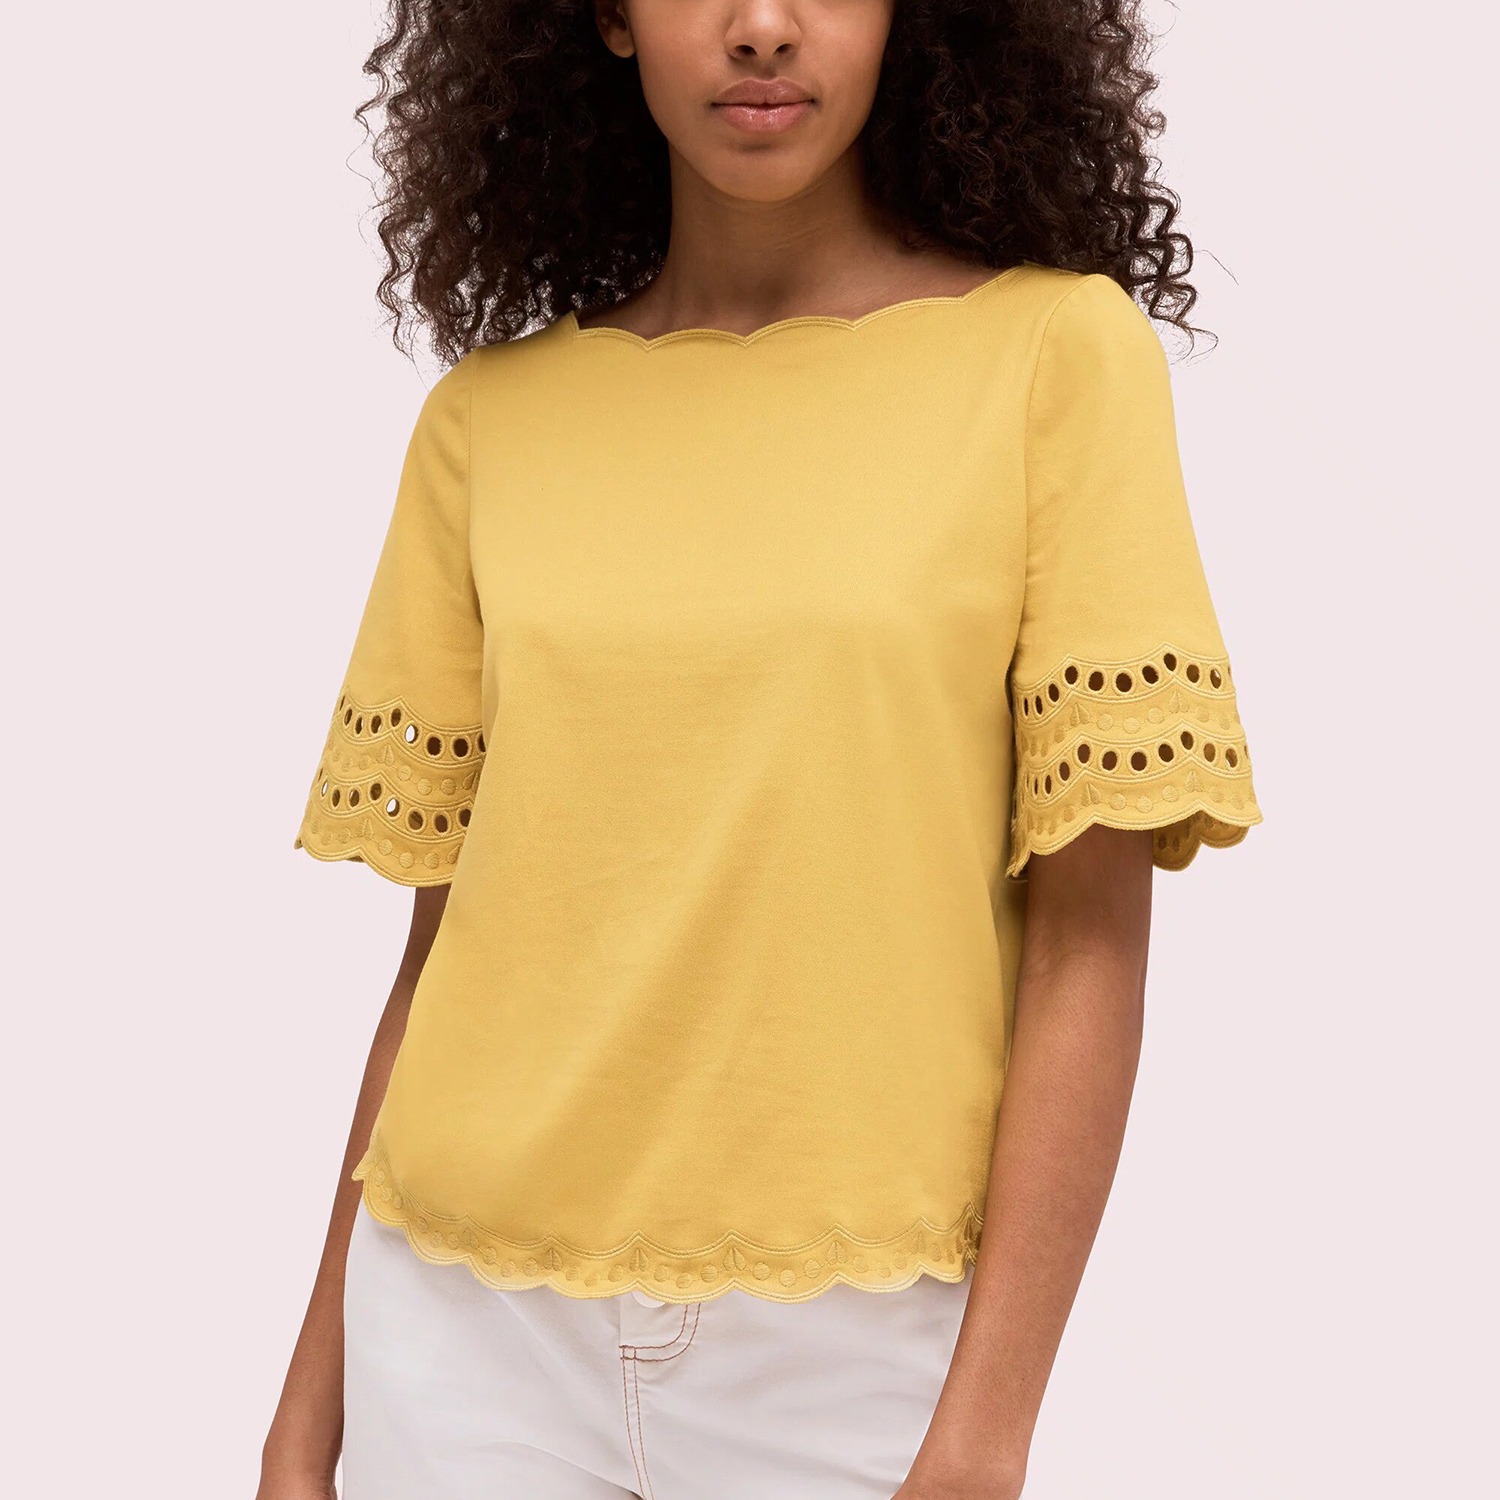 Kate Spade Scallop Border Knit Tee